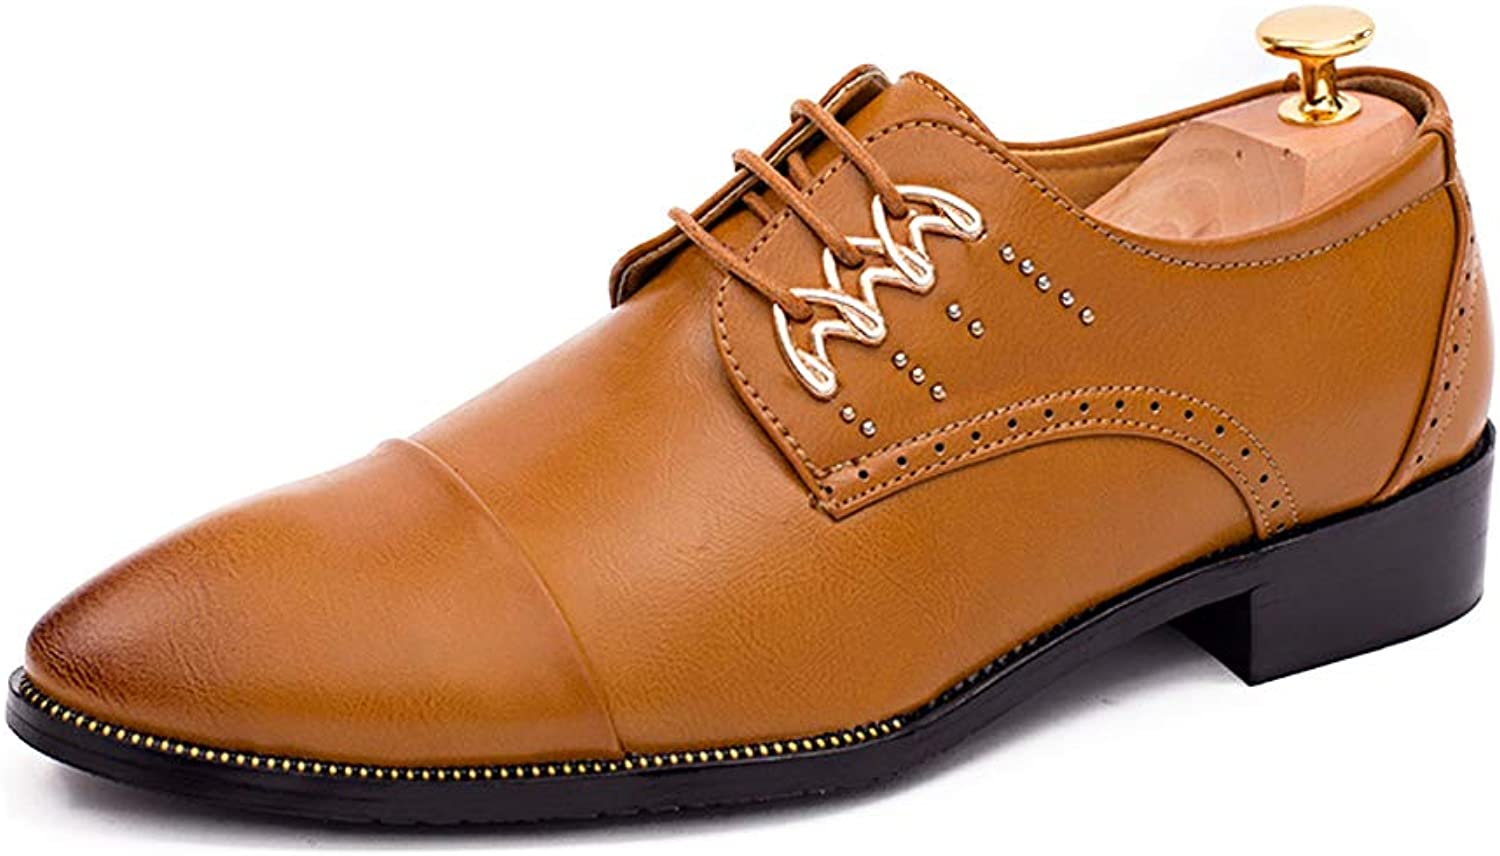 CHENXD shoes, Men's Fashion New Casual Business Oxford Wear Low color Helps Tip The British Trend Formal shoes